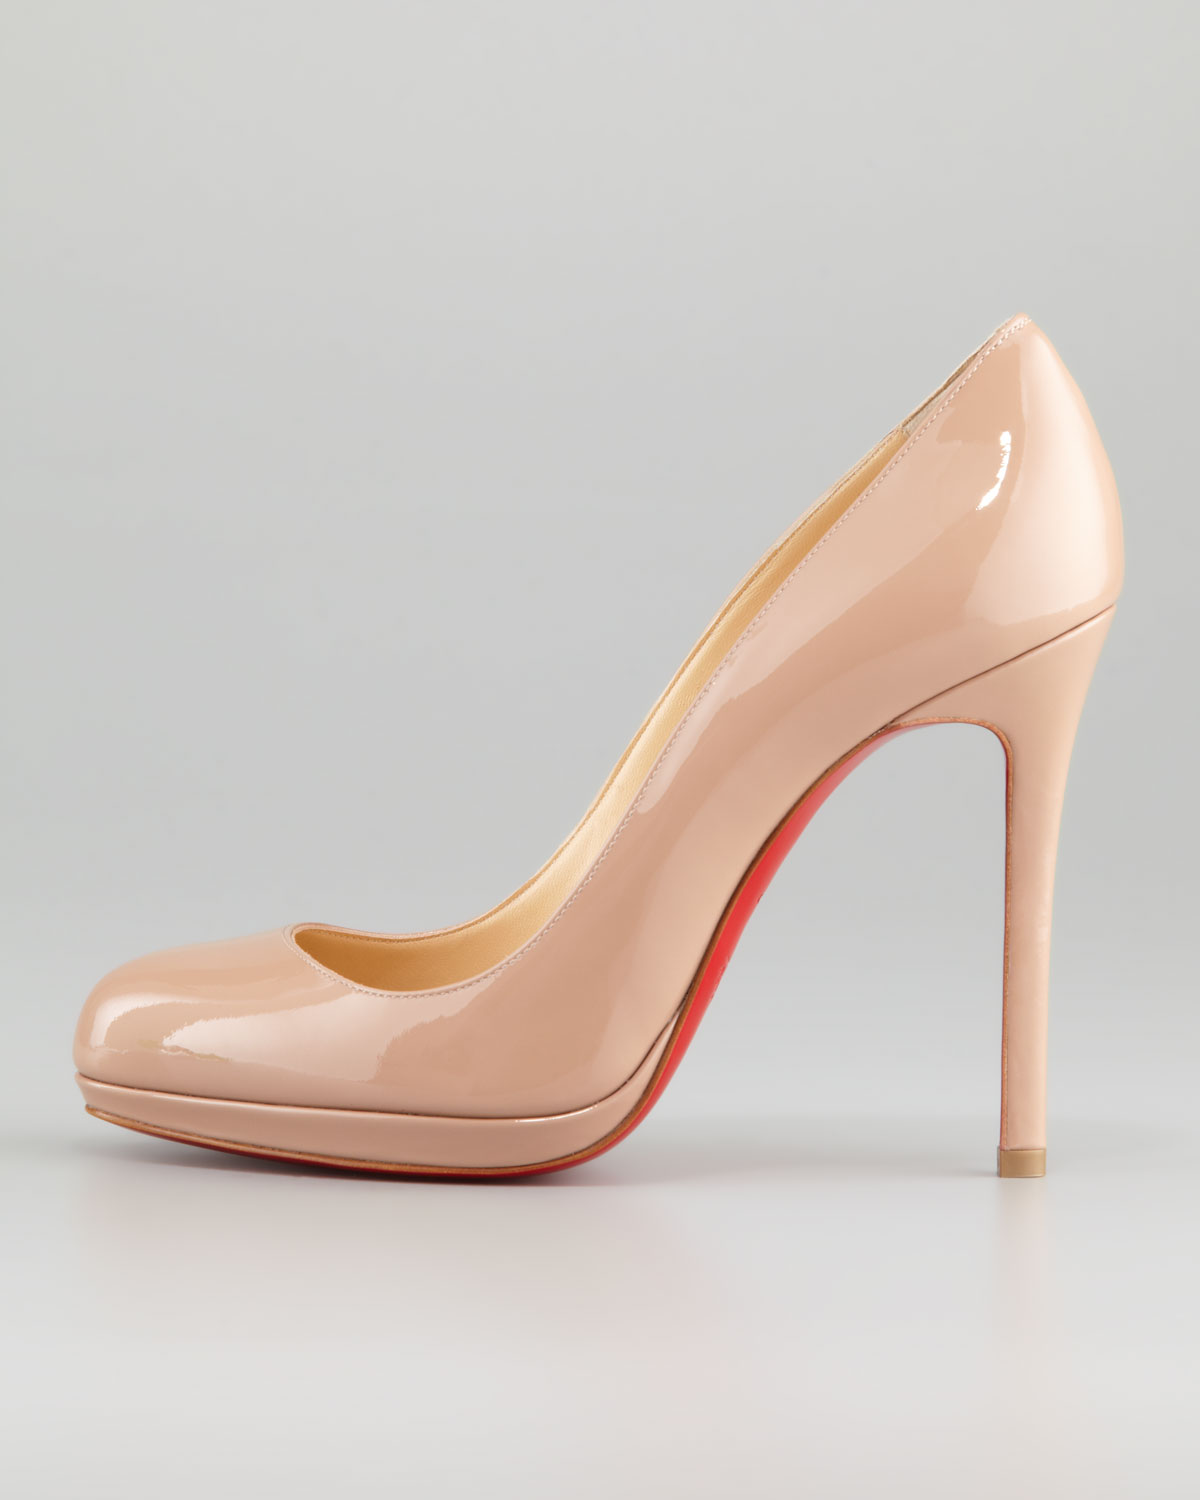 Lyst - Christian Louboutin Neofilo Patent Roundtoe Red Sole Pump ... a7d51f88c517